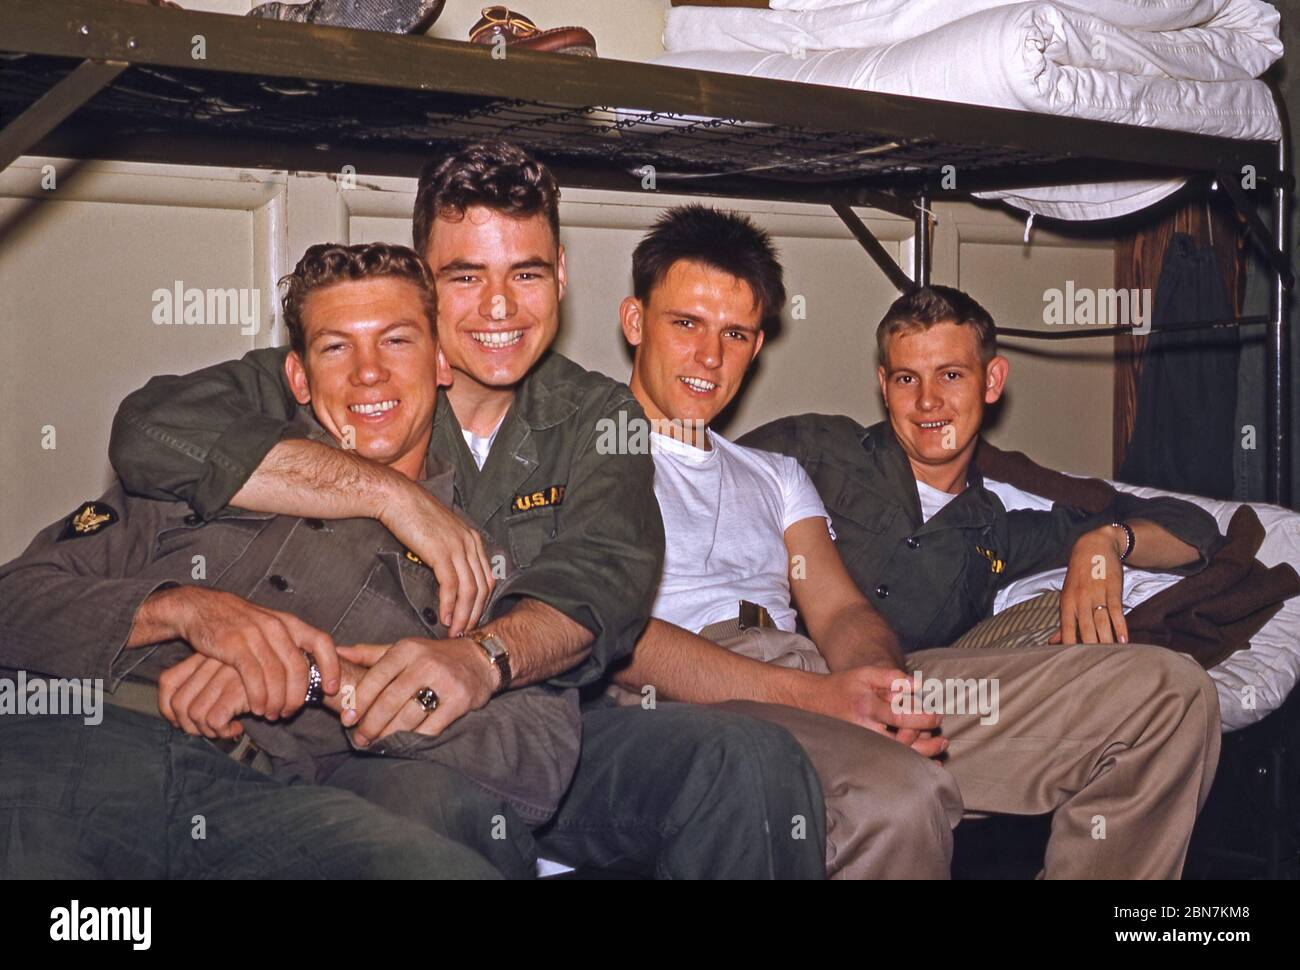 US Army soldiers stationed in Germany in the mid-1950s – four members of the 160th Signal Group are pictured on a bunk bed at the Panzer Kaserne (PK) headquarters, in Böblingen. From 1955 the 160th Signal Group provided communications throughout Germany under the US 7th (Seventh) Army during the Post-war era from an HQ at Panzer Kaserne (PK), in Böblingen (Boeblingen) near Stuttgart. The US 7th Army's HQ was at nearby Patch Barracks. Stock Photo